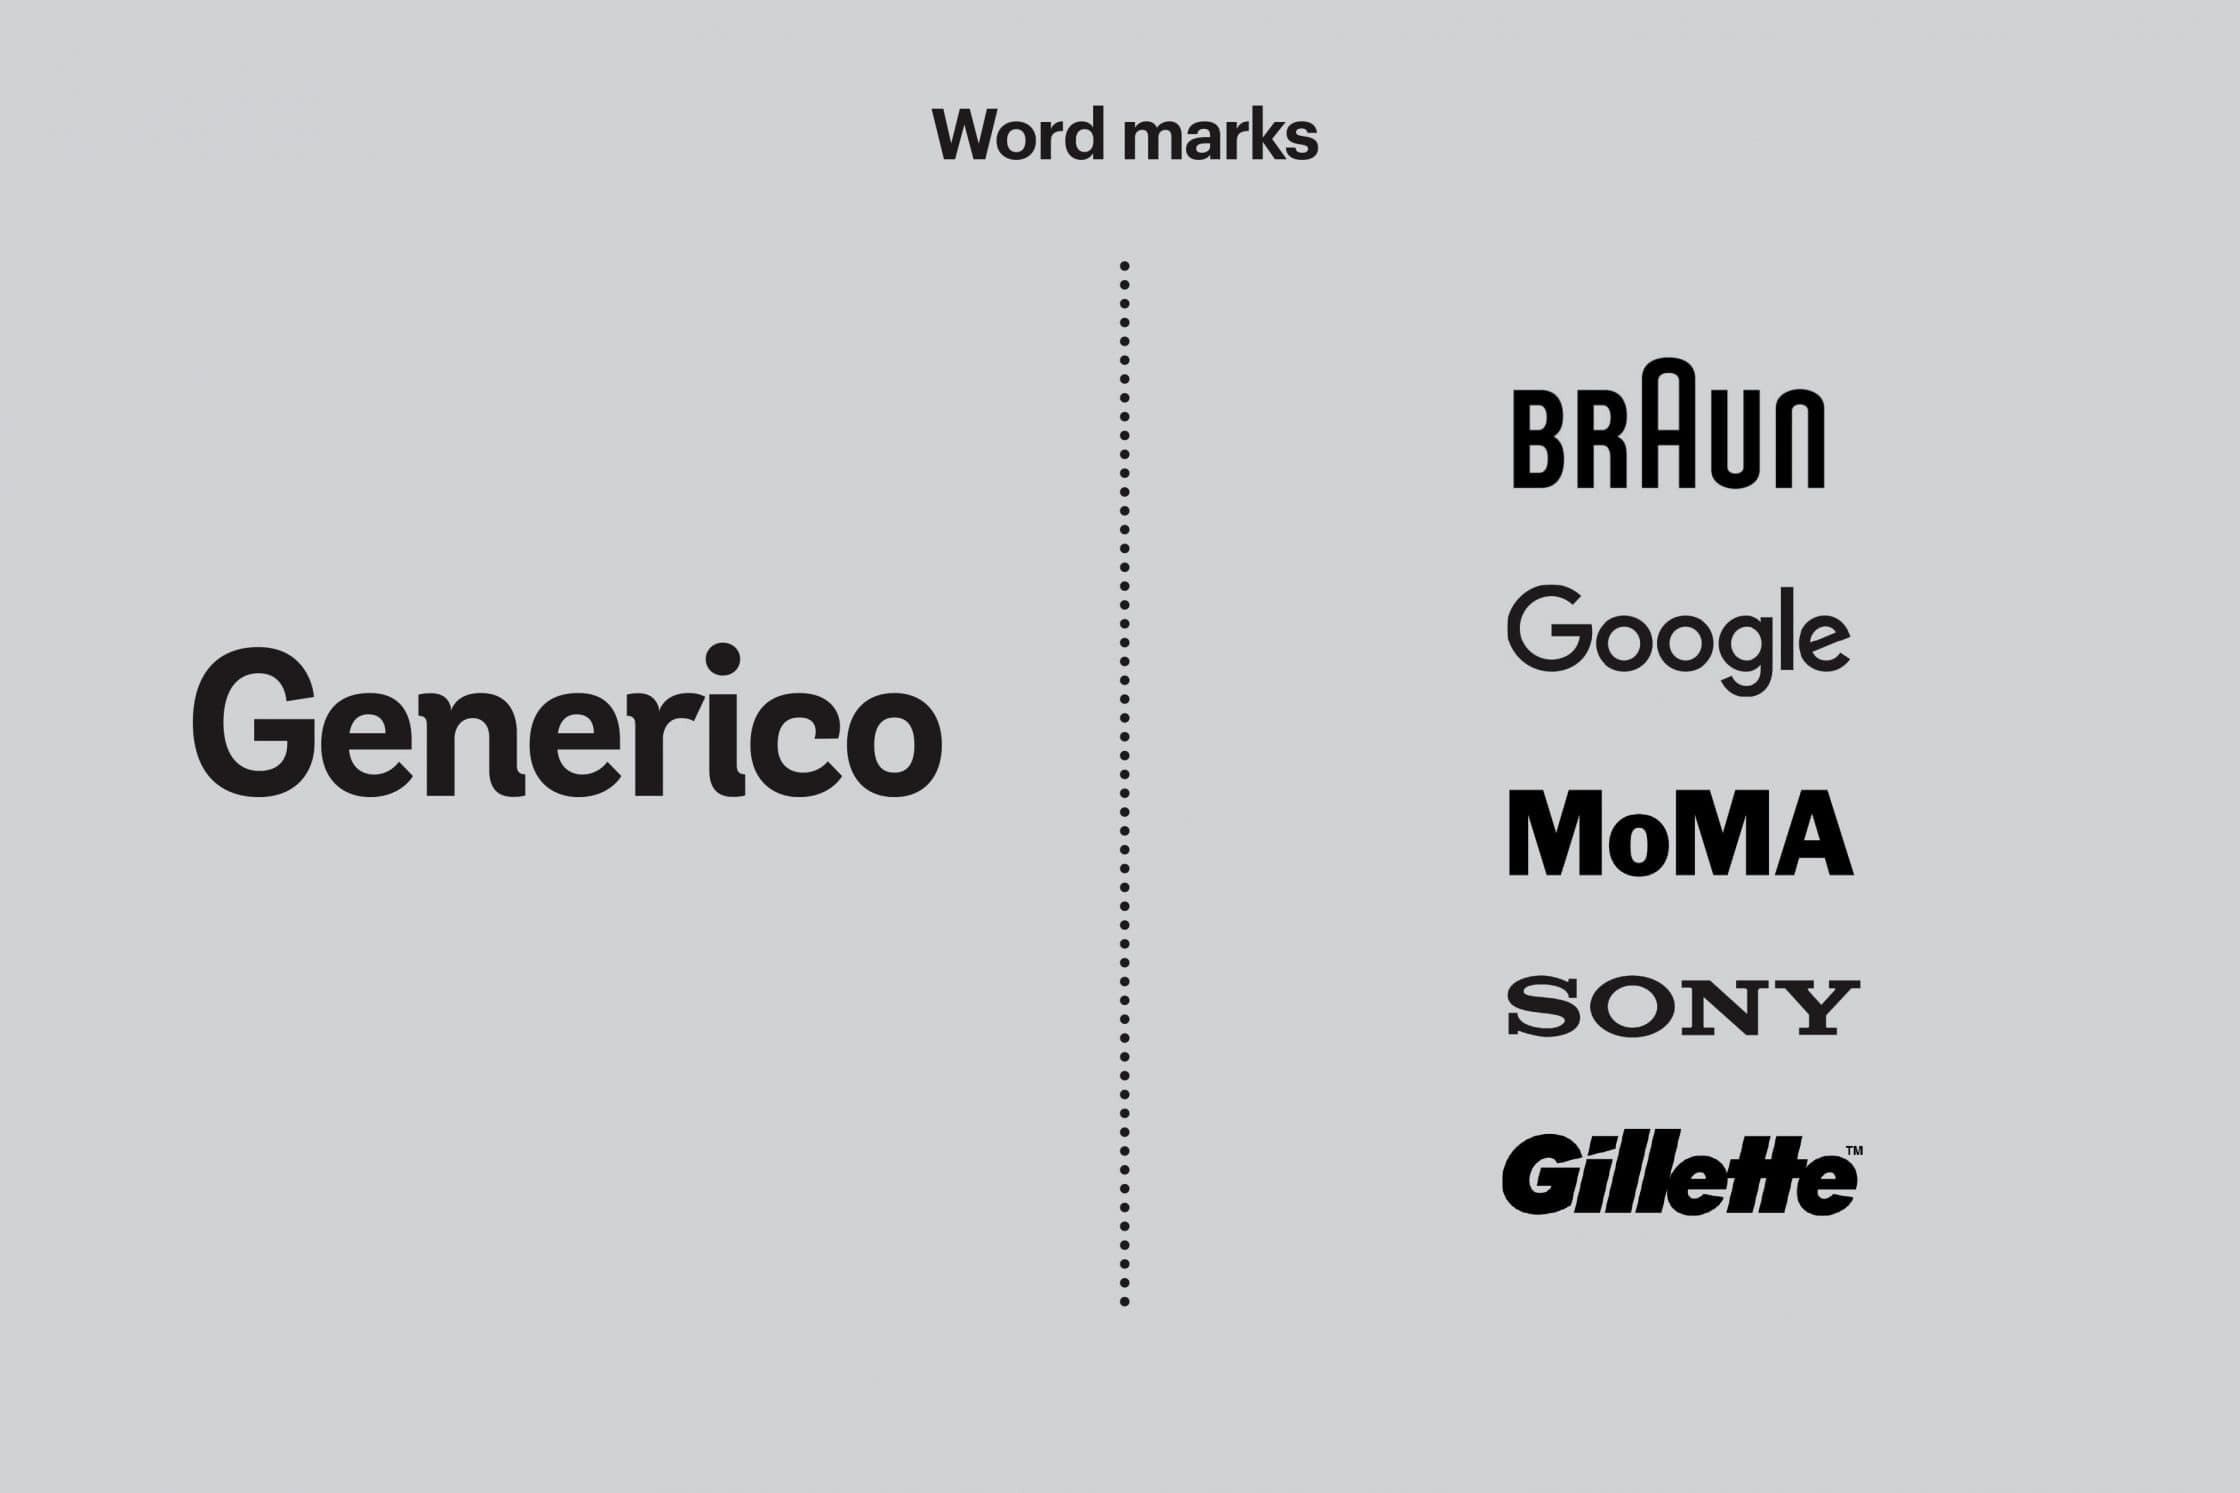 Example of work marks used by Generico and known brands.